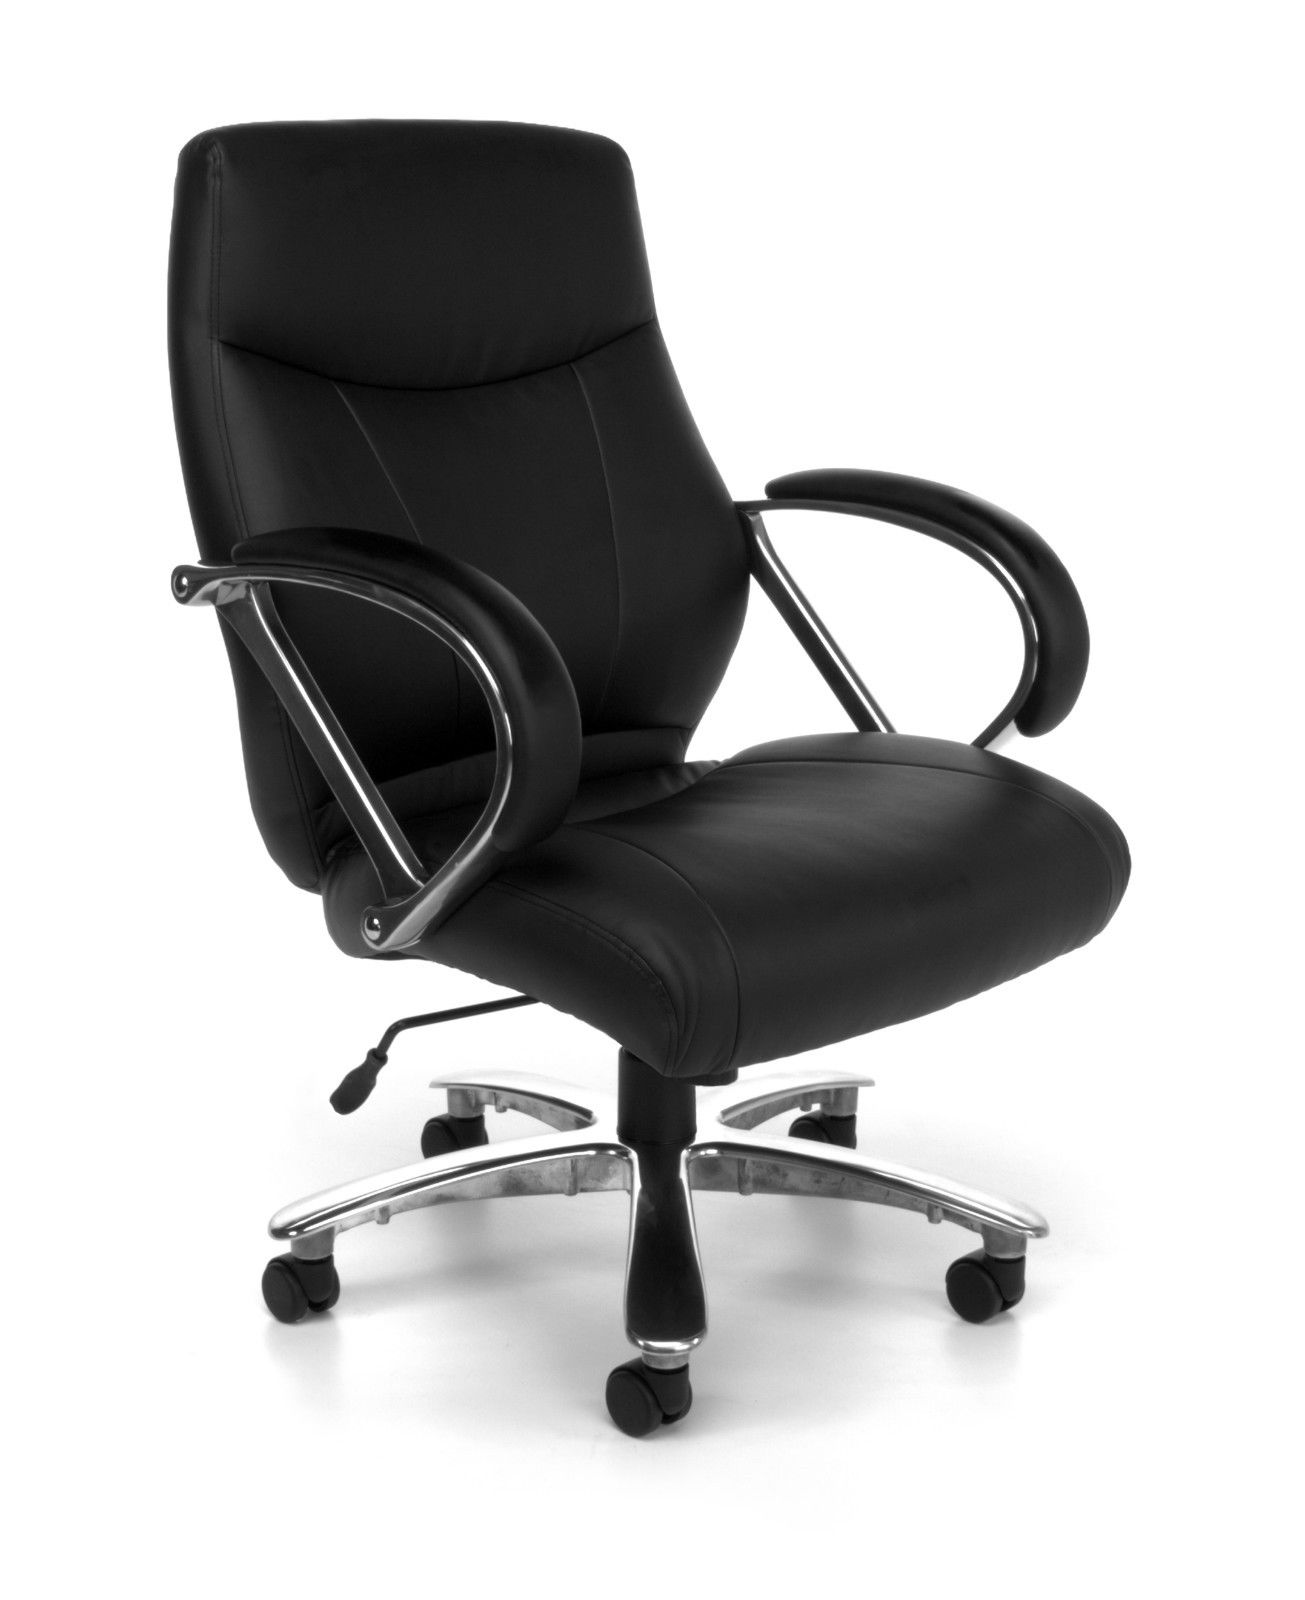 #103 - Big and Tall Black Leather Mid Back Executive Office Desk Chair